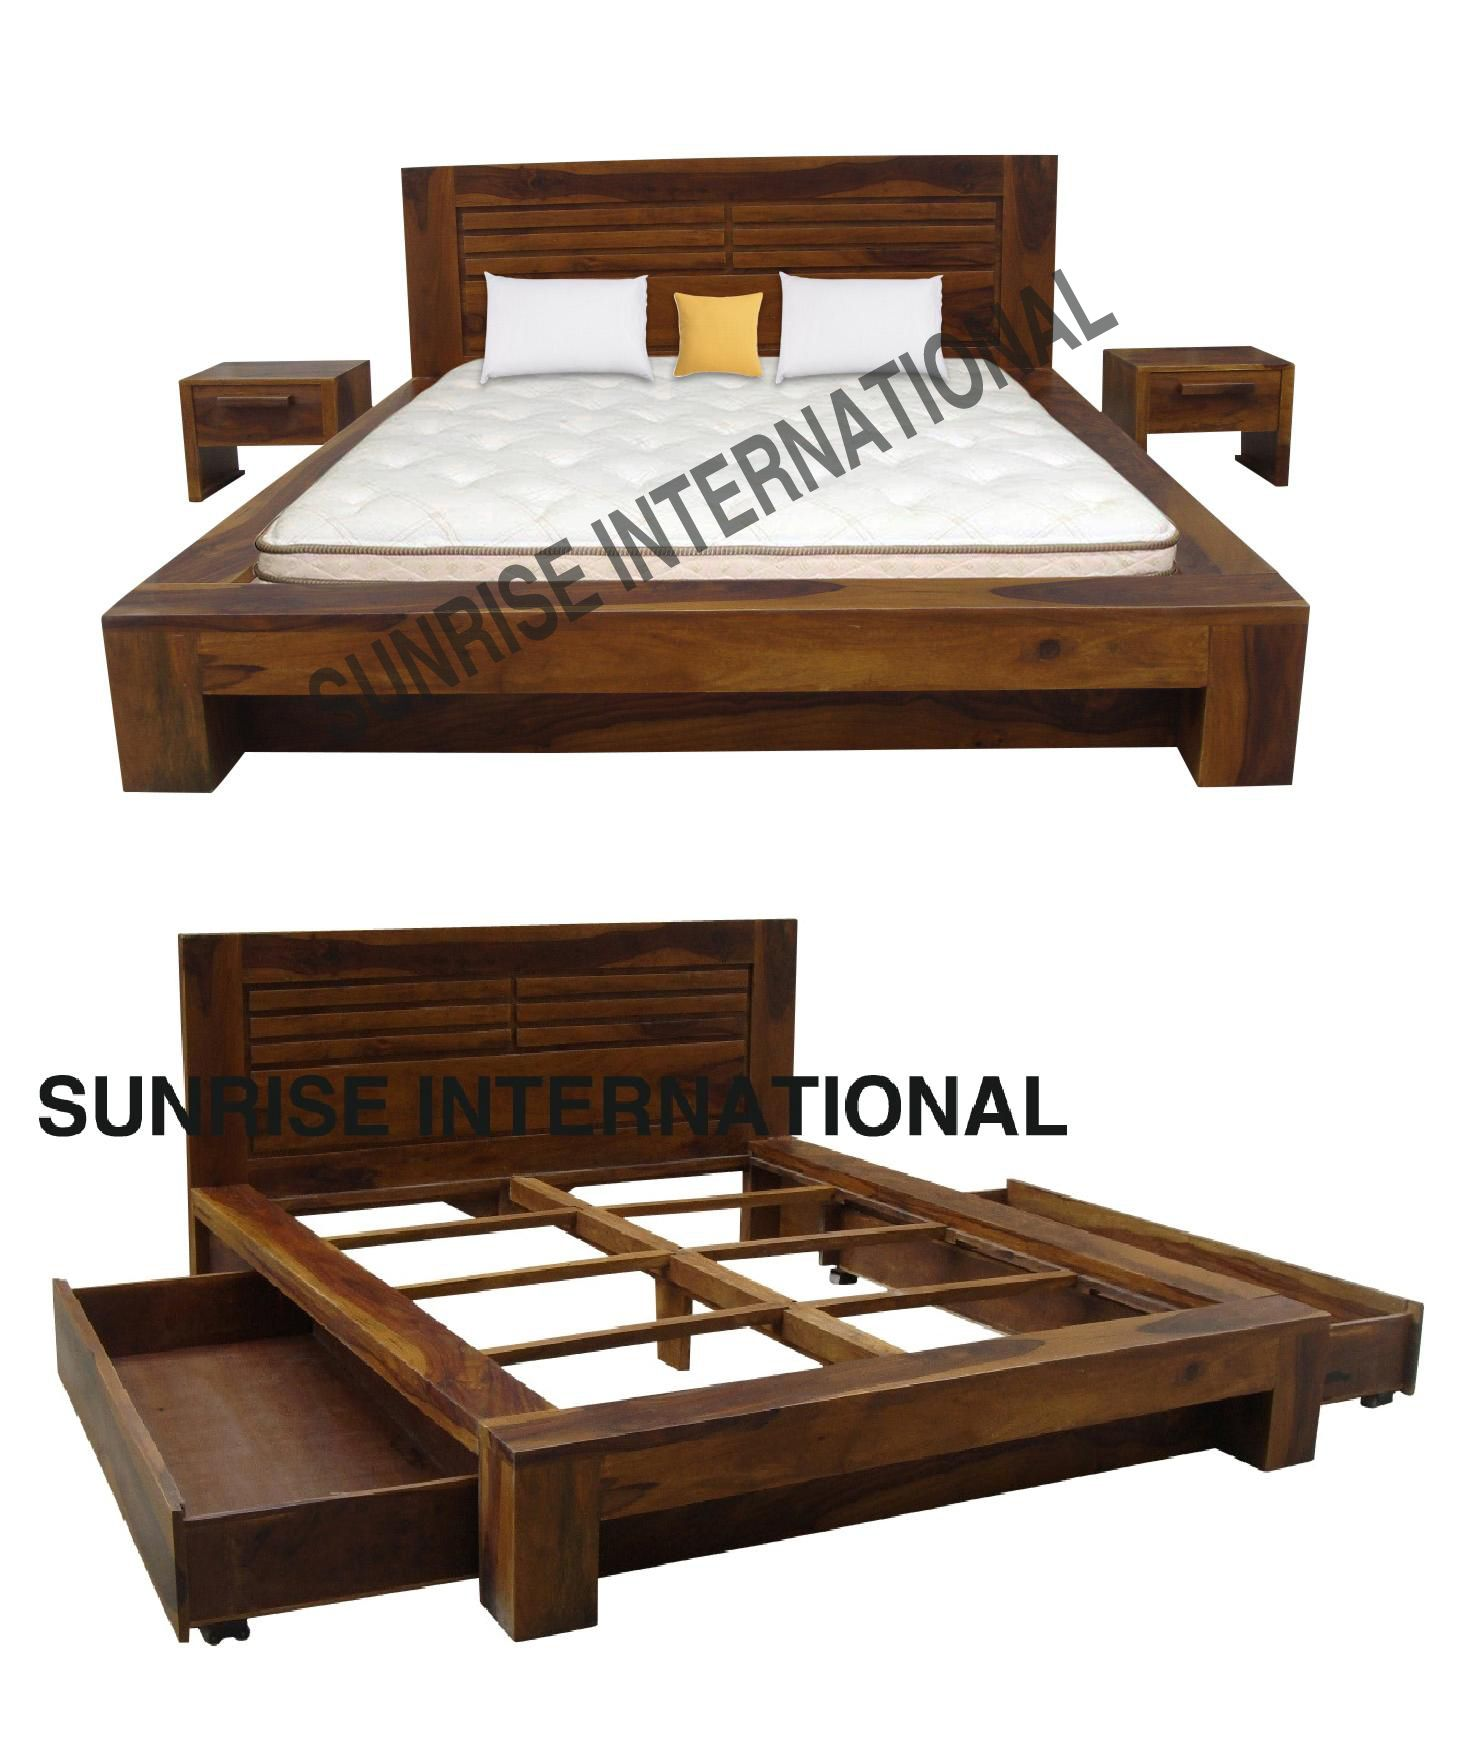 Wooden bed furniture design - Wooden Bed Beds Design Bedroom Furniture Designs India Email Jetain Sunriseartexports